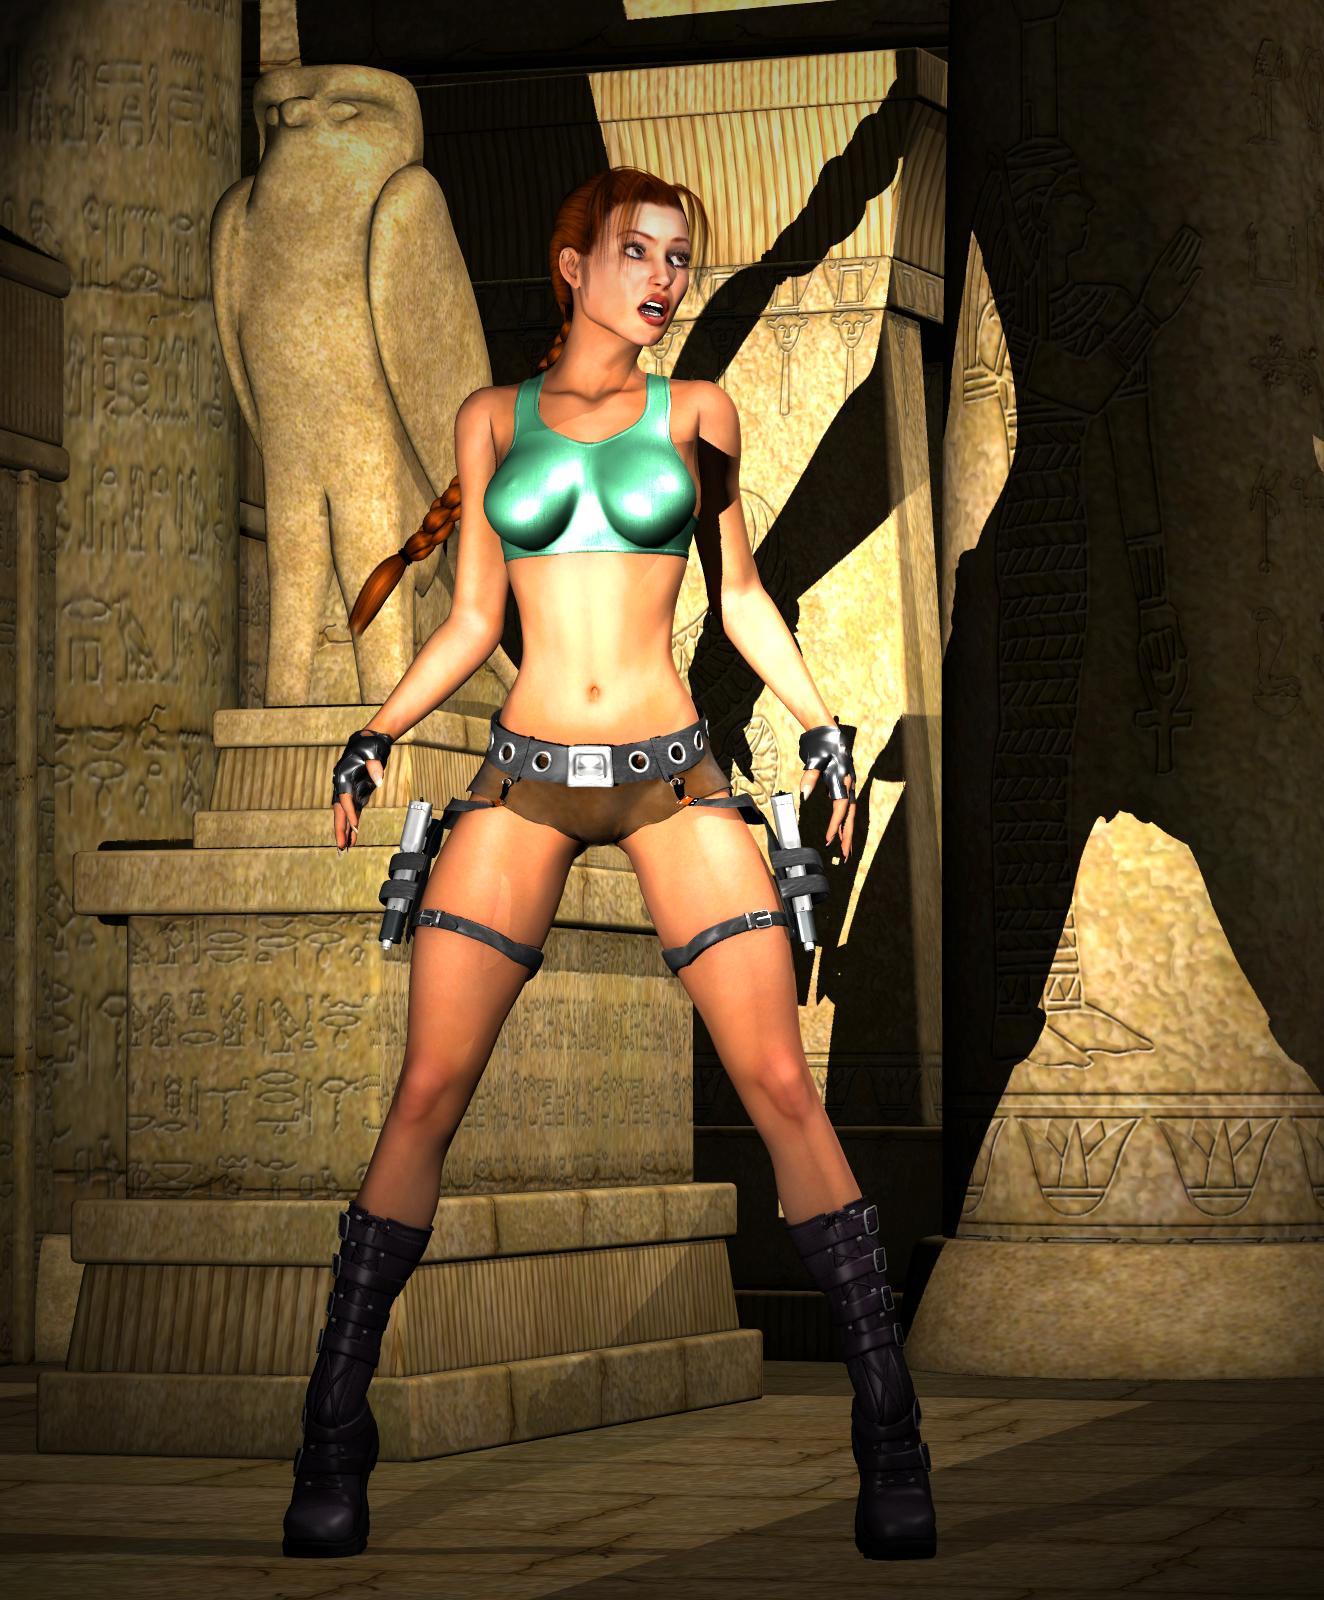 Porncraft lara croft porn movies